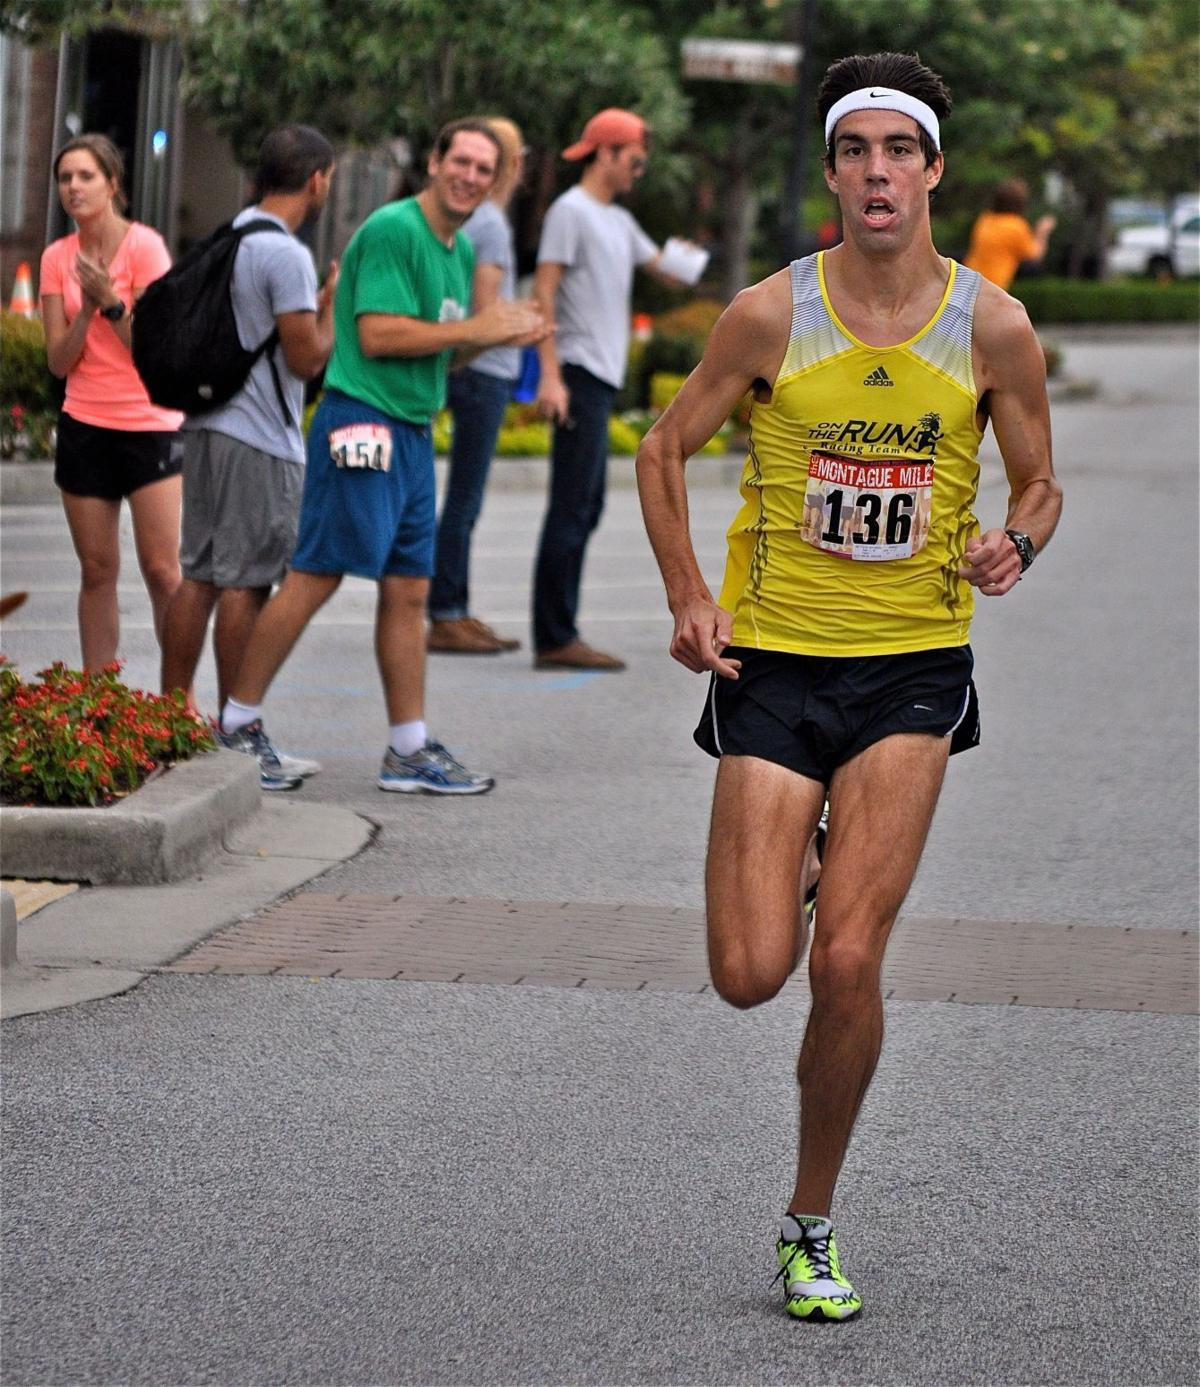 Banks, Judd defend titles at Montague Mile